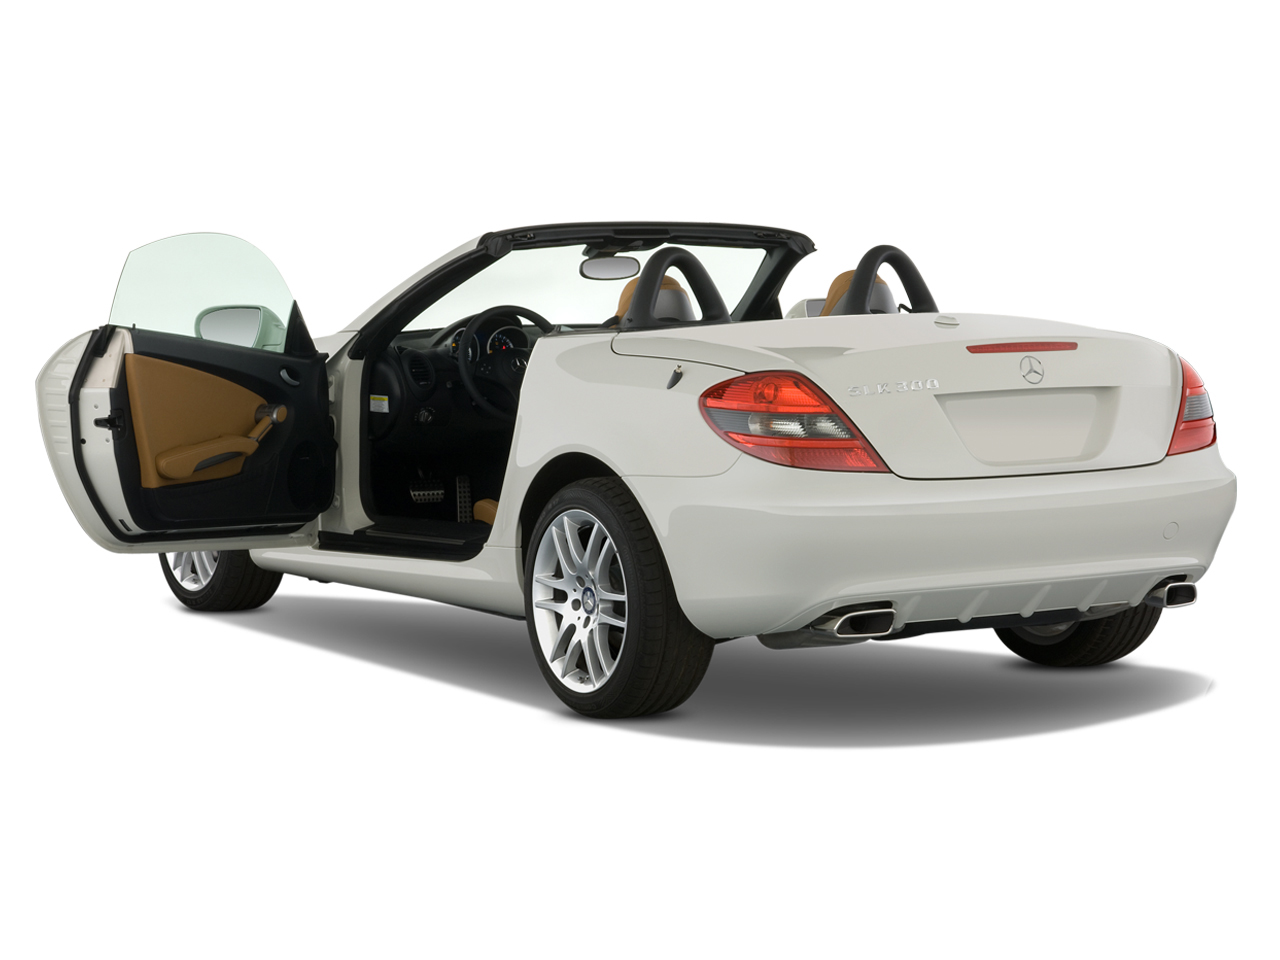 2009 mercedes benz slk 55 amg mercedes benz luxury convertible review automobile magazine. Black Bedroom Furniture Sets. Home Design Ideas